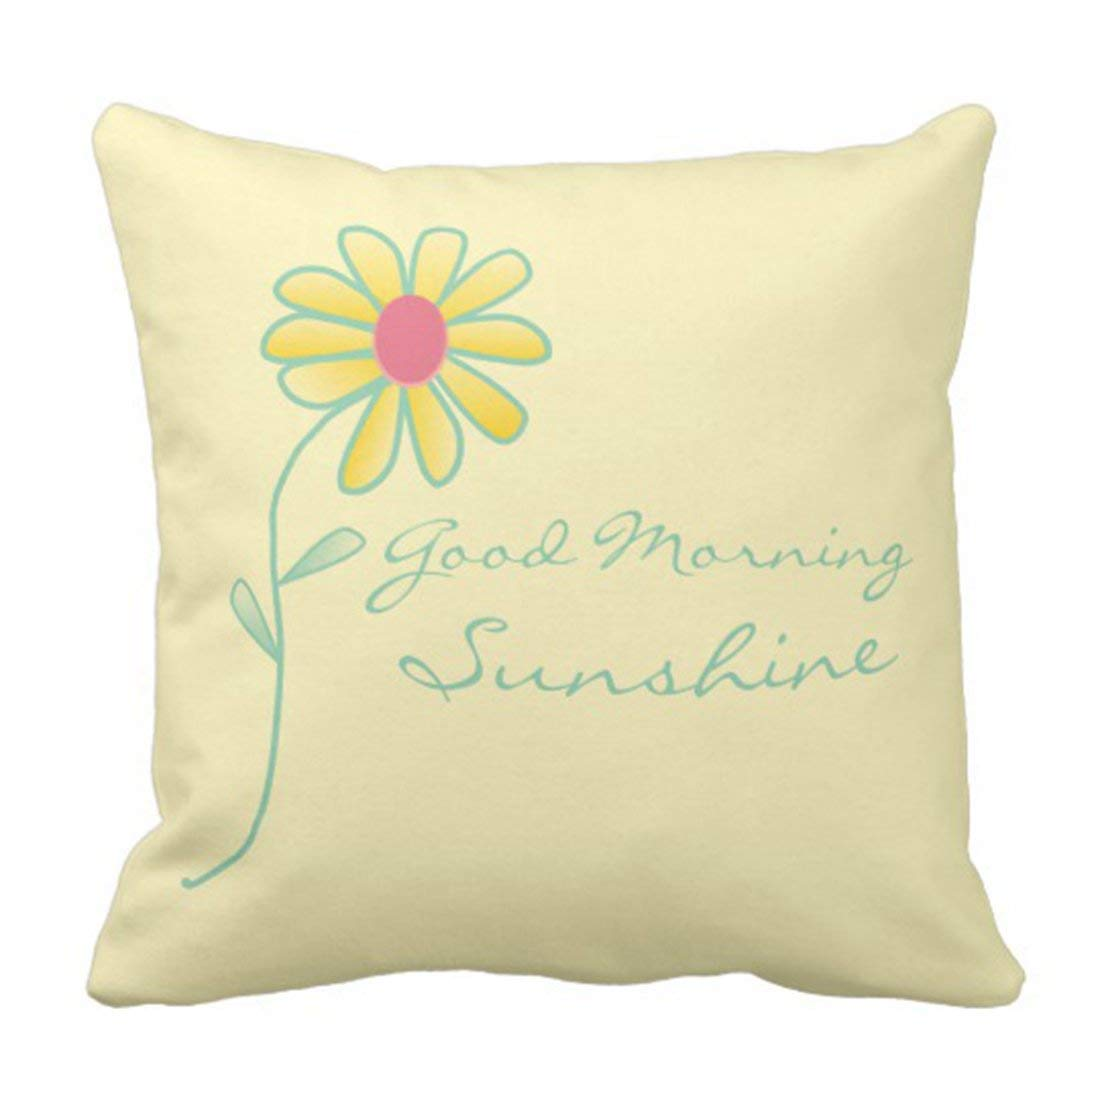 WOPOP Flower Modern Good Morning Sunshine Yellow and Green Chic Pillowcase Cushion Cover 16x16 inches